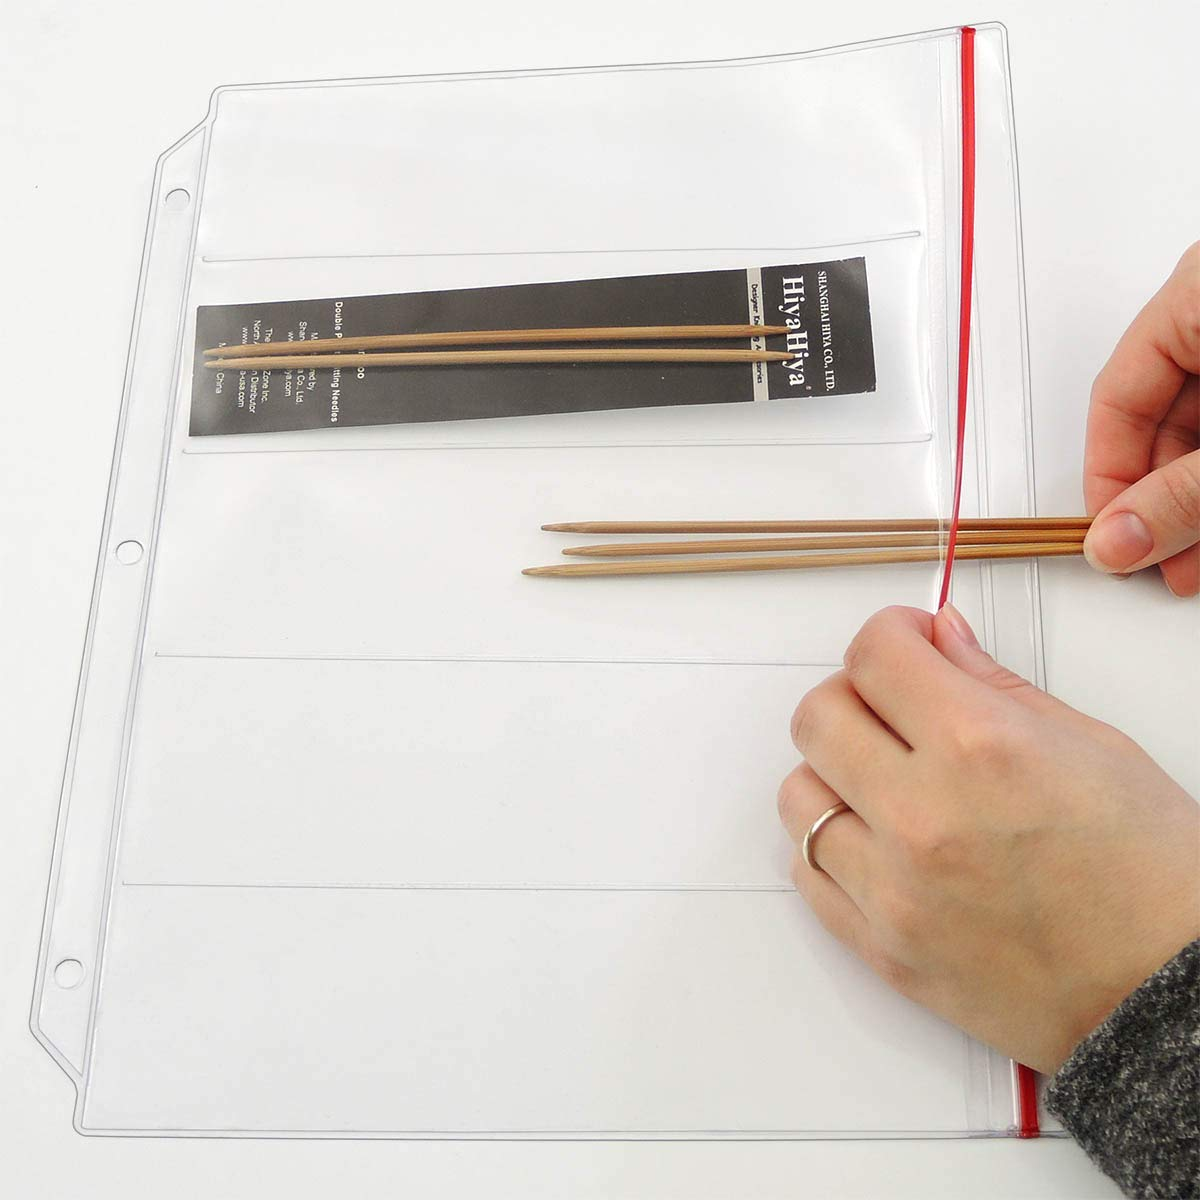 StoreSMART Binder Page for Double Point Needles - Holds 5 Needles per Page - 10-Pack - DP500-5-10 by STORE SMART (Image #3)